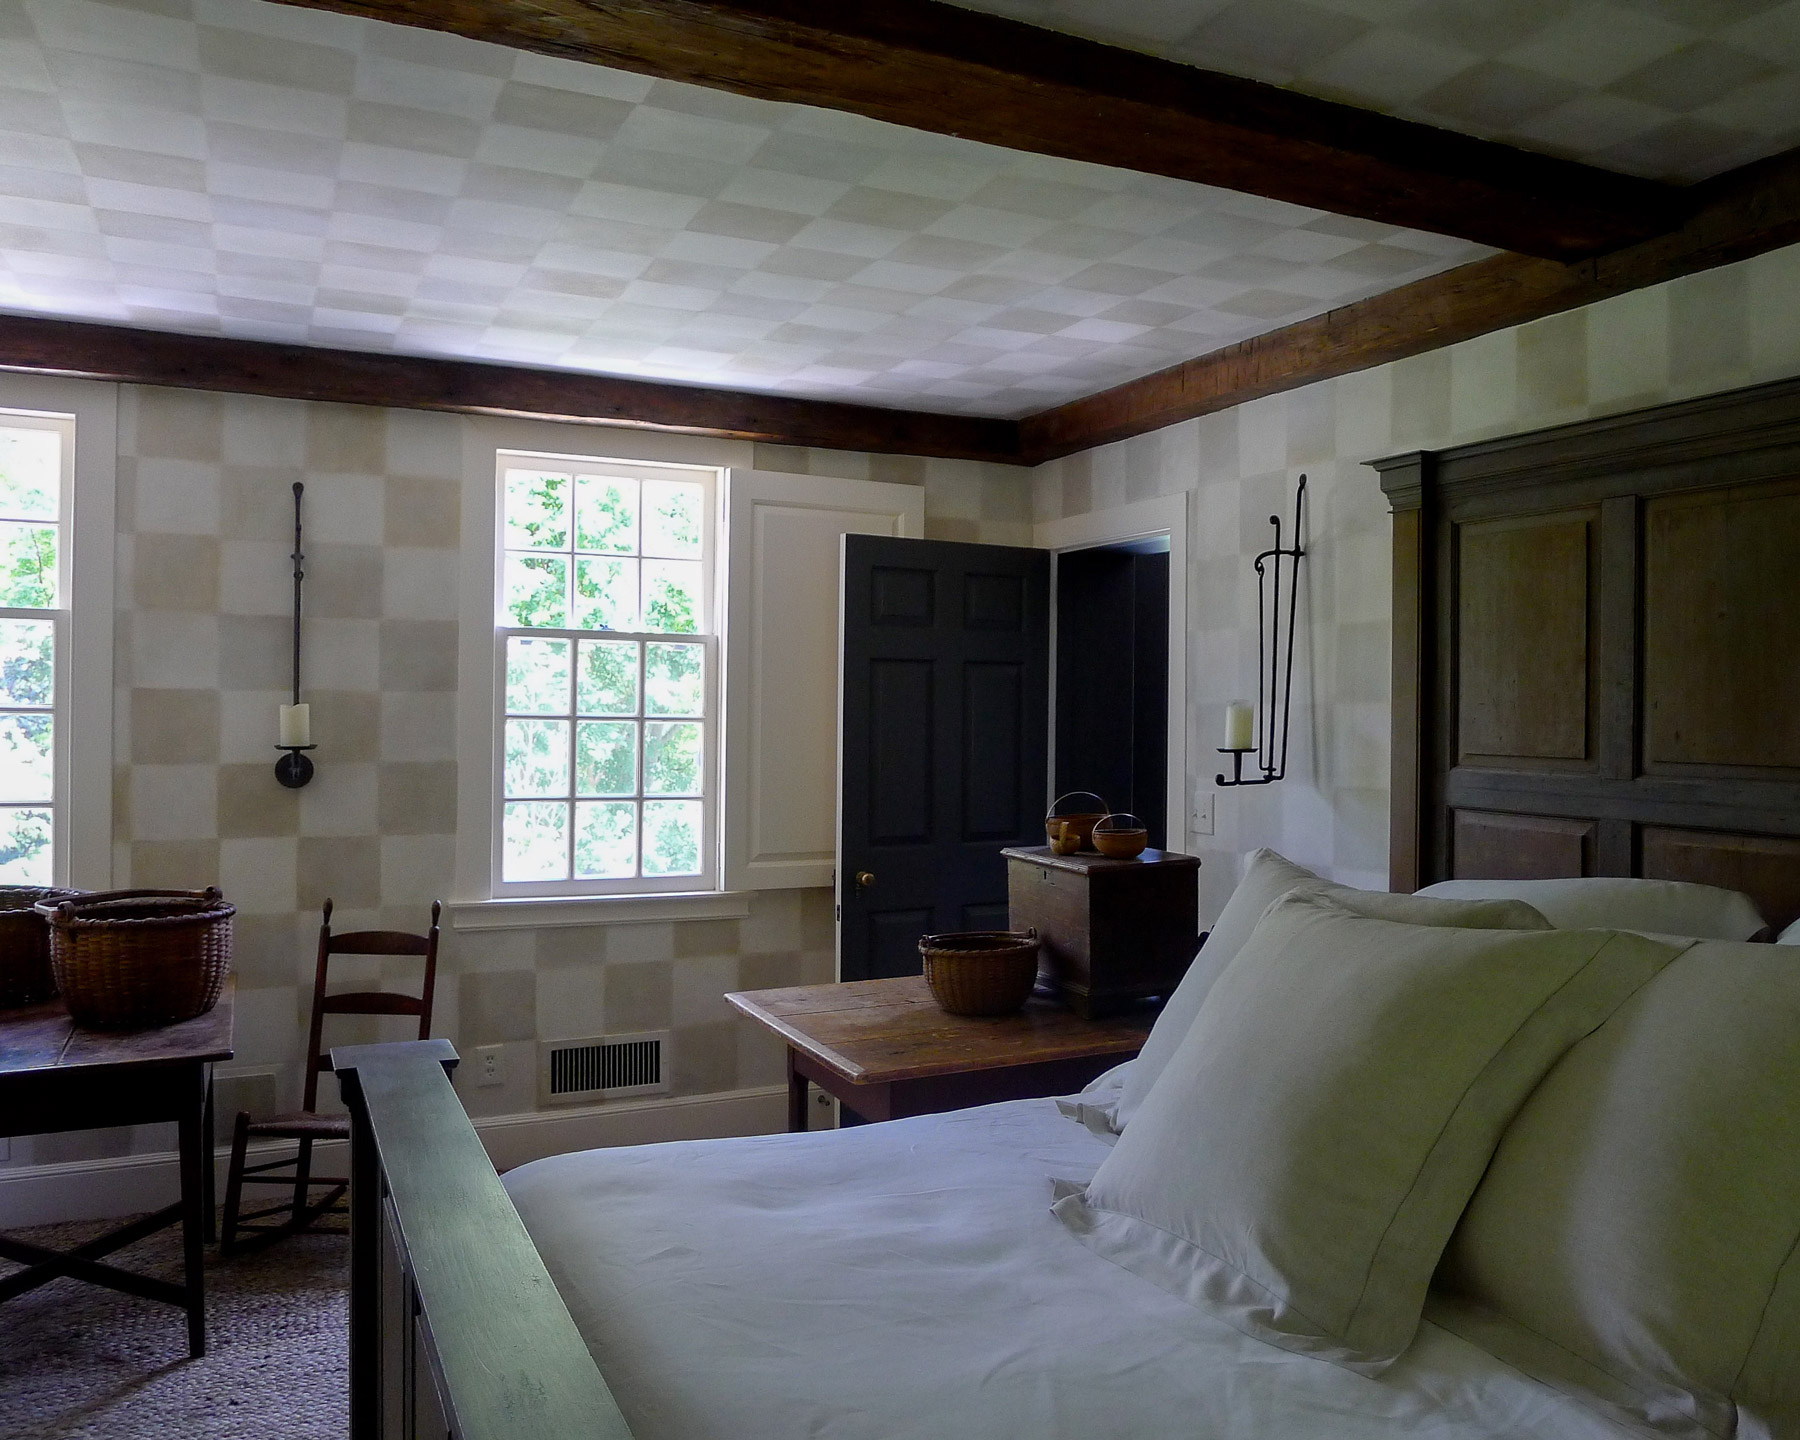 Image of bedroom with handpainted walls featuring subtle grid of cream and beige